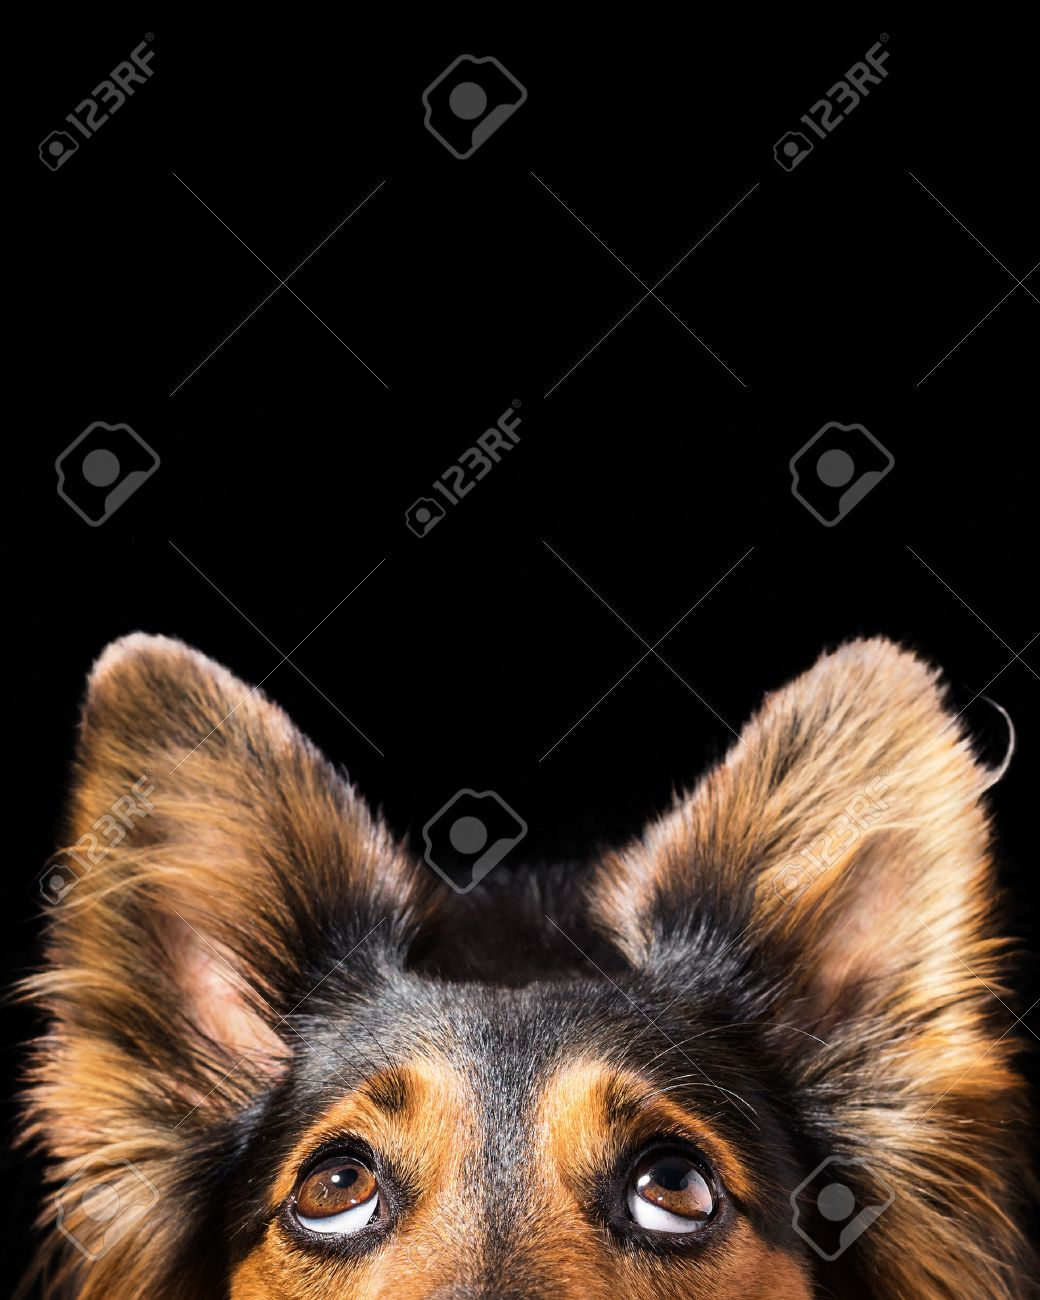 Close up of Black and brown mix breed dog or canine face looking up with big eyes and perky ears while curious interested adorable cute watching patient wanting hungry focused begging wishing hoping - 62441149